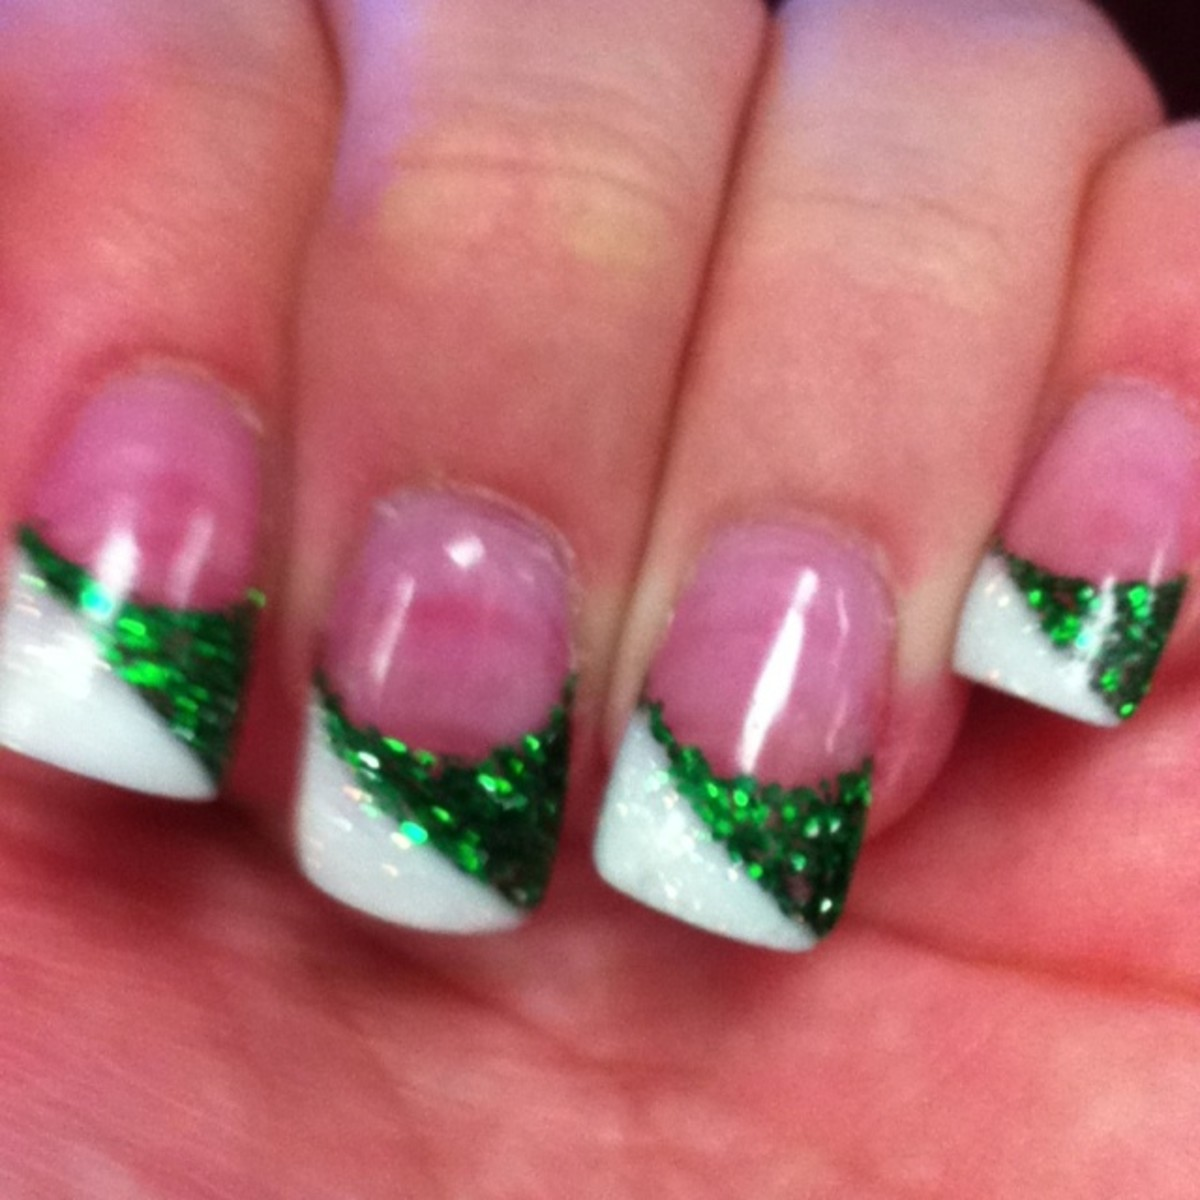 green and white nail tips